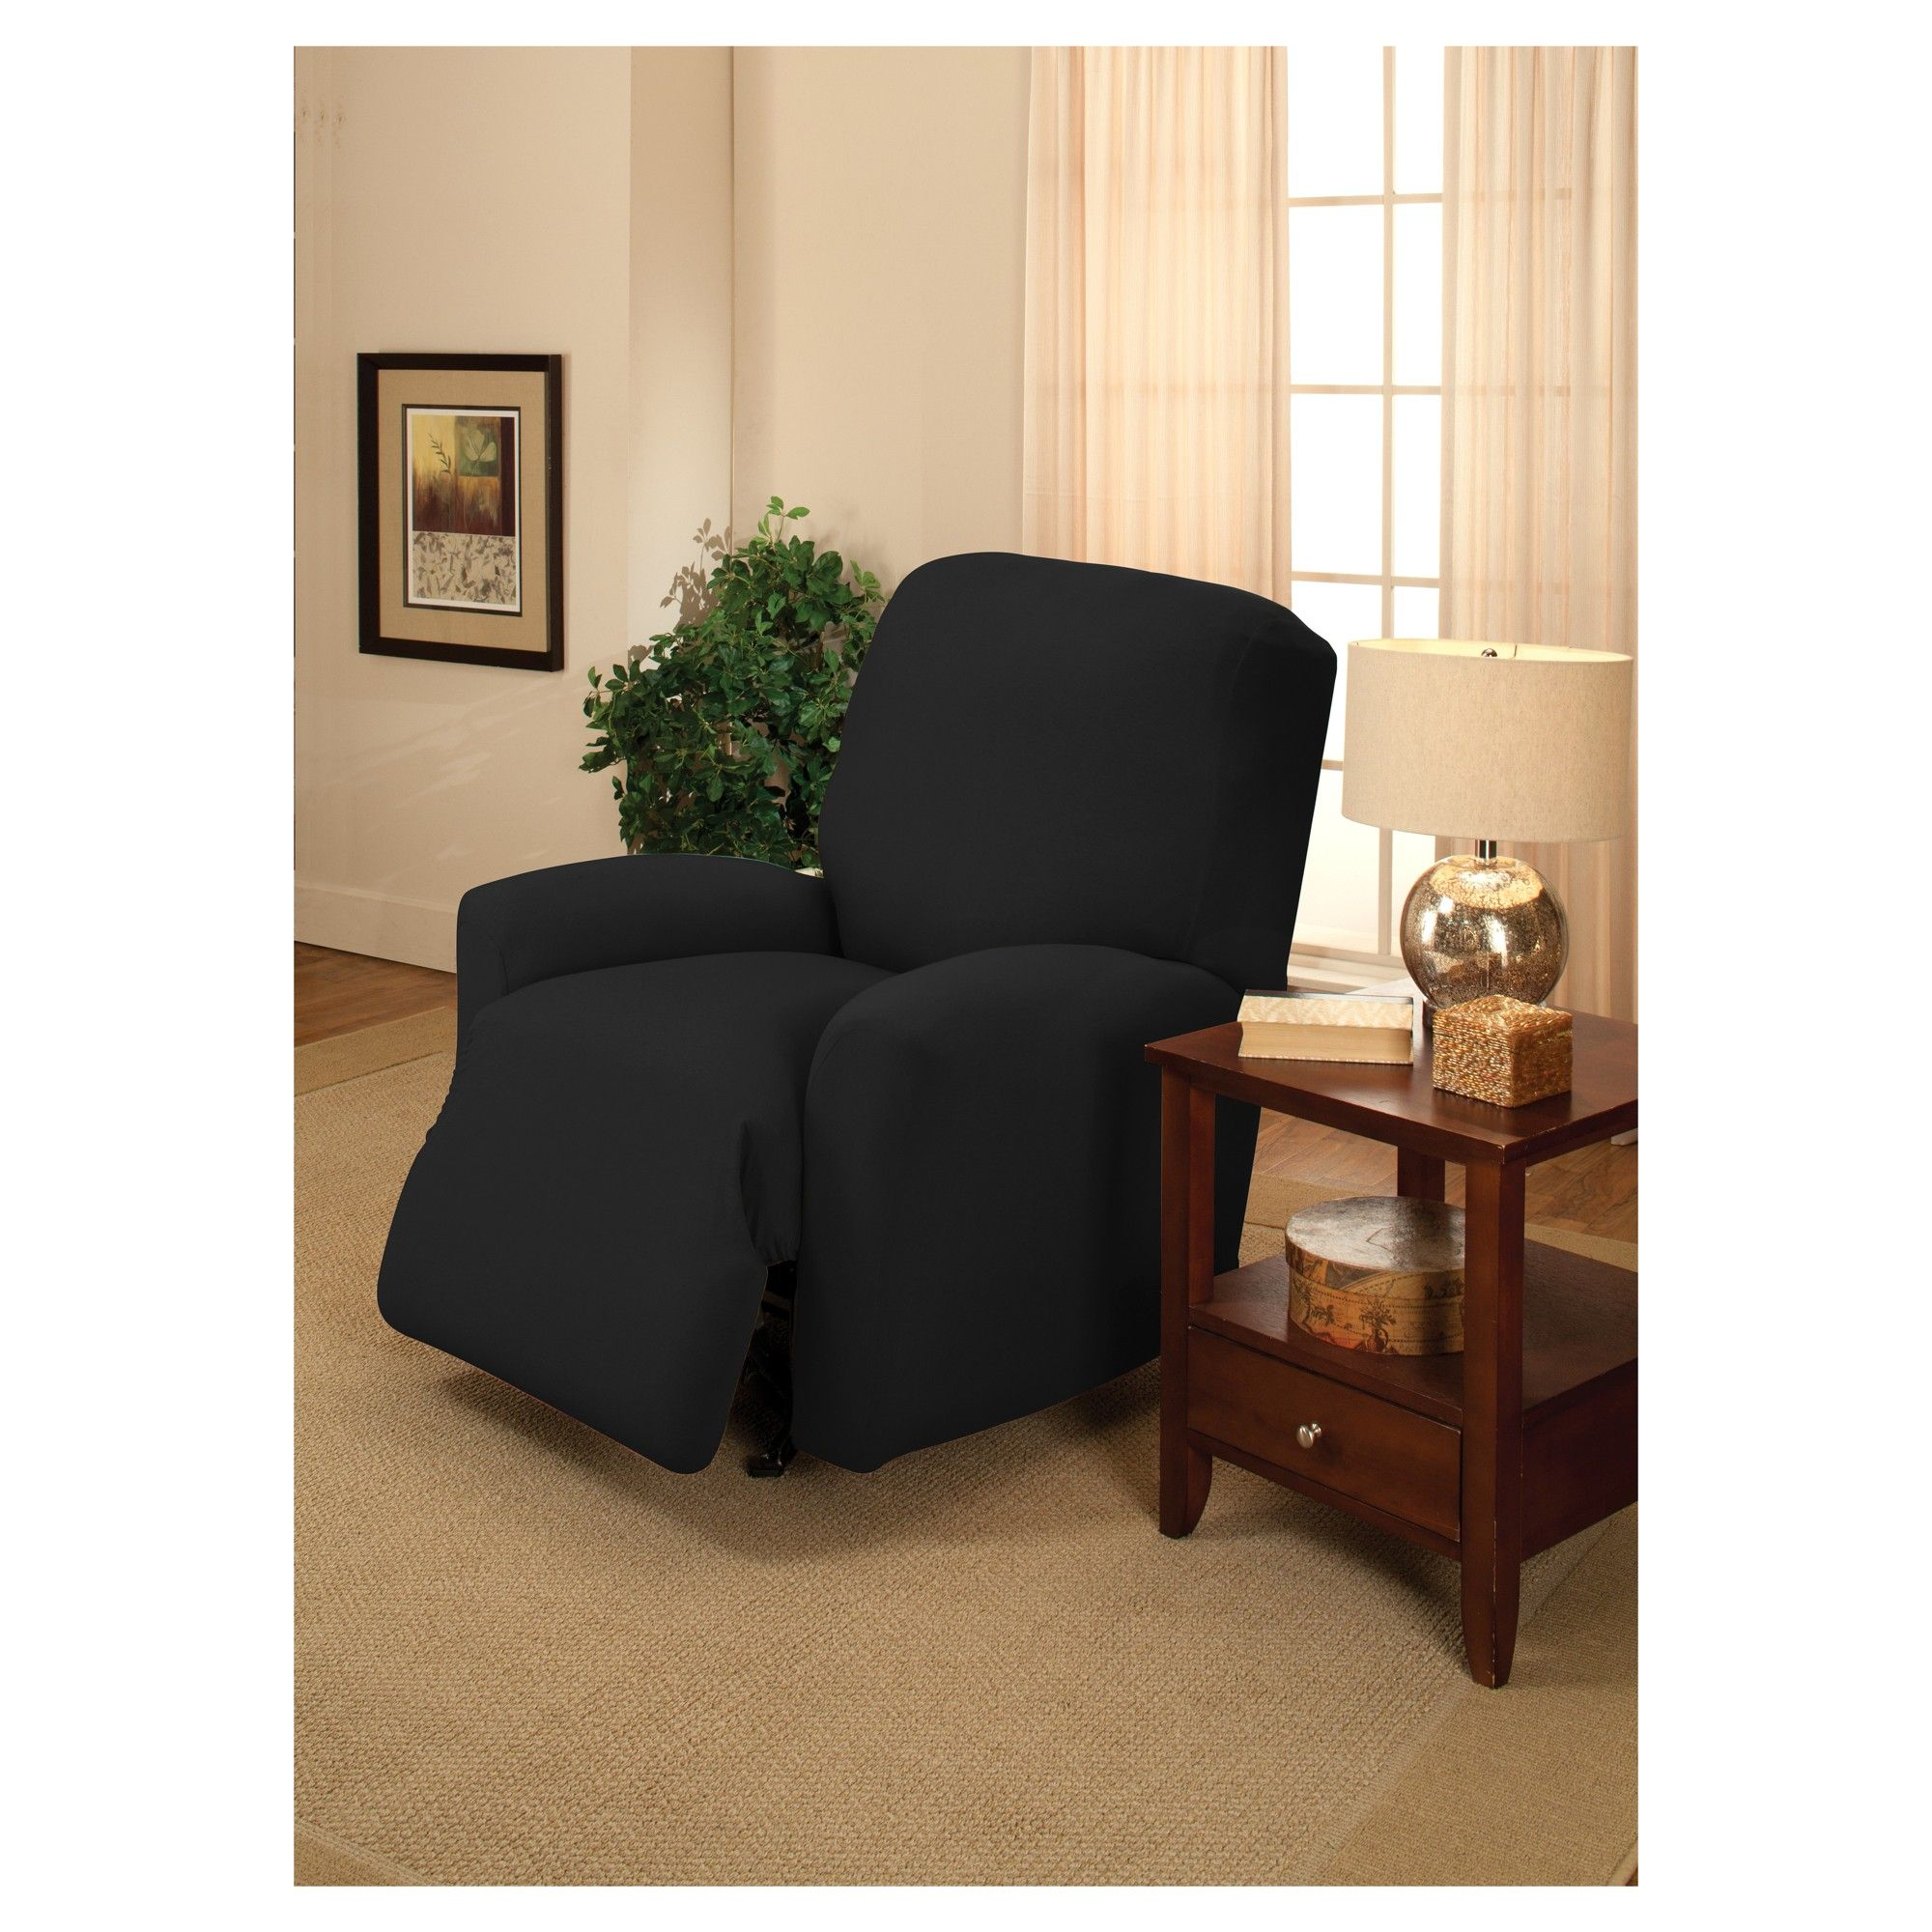 slipcovers stretch recliners double slipcover for p diamond recliner